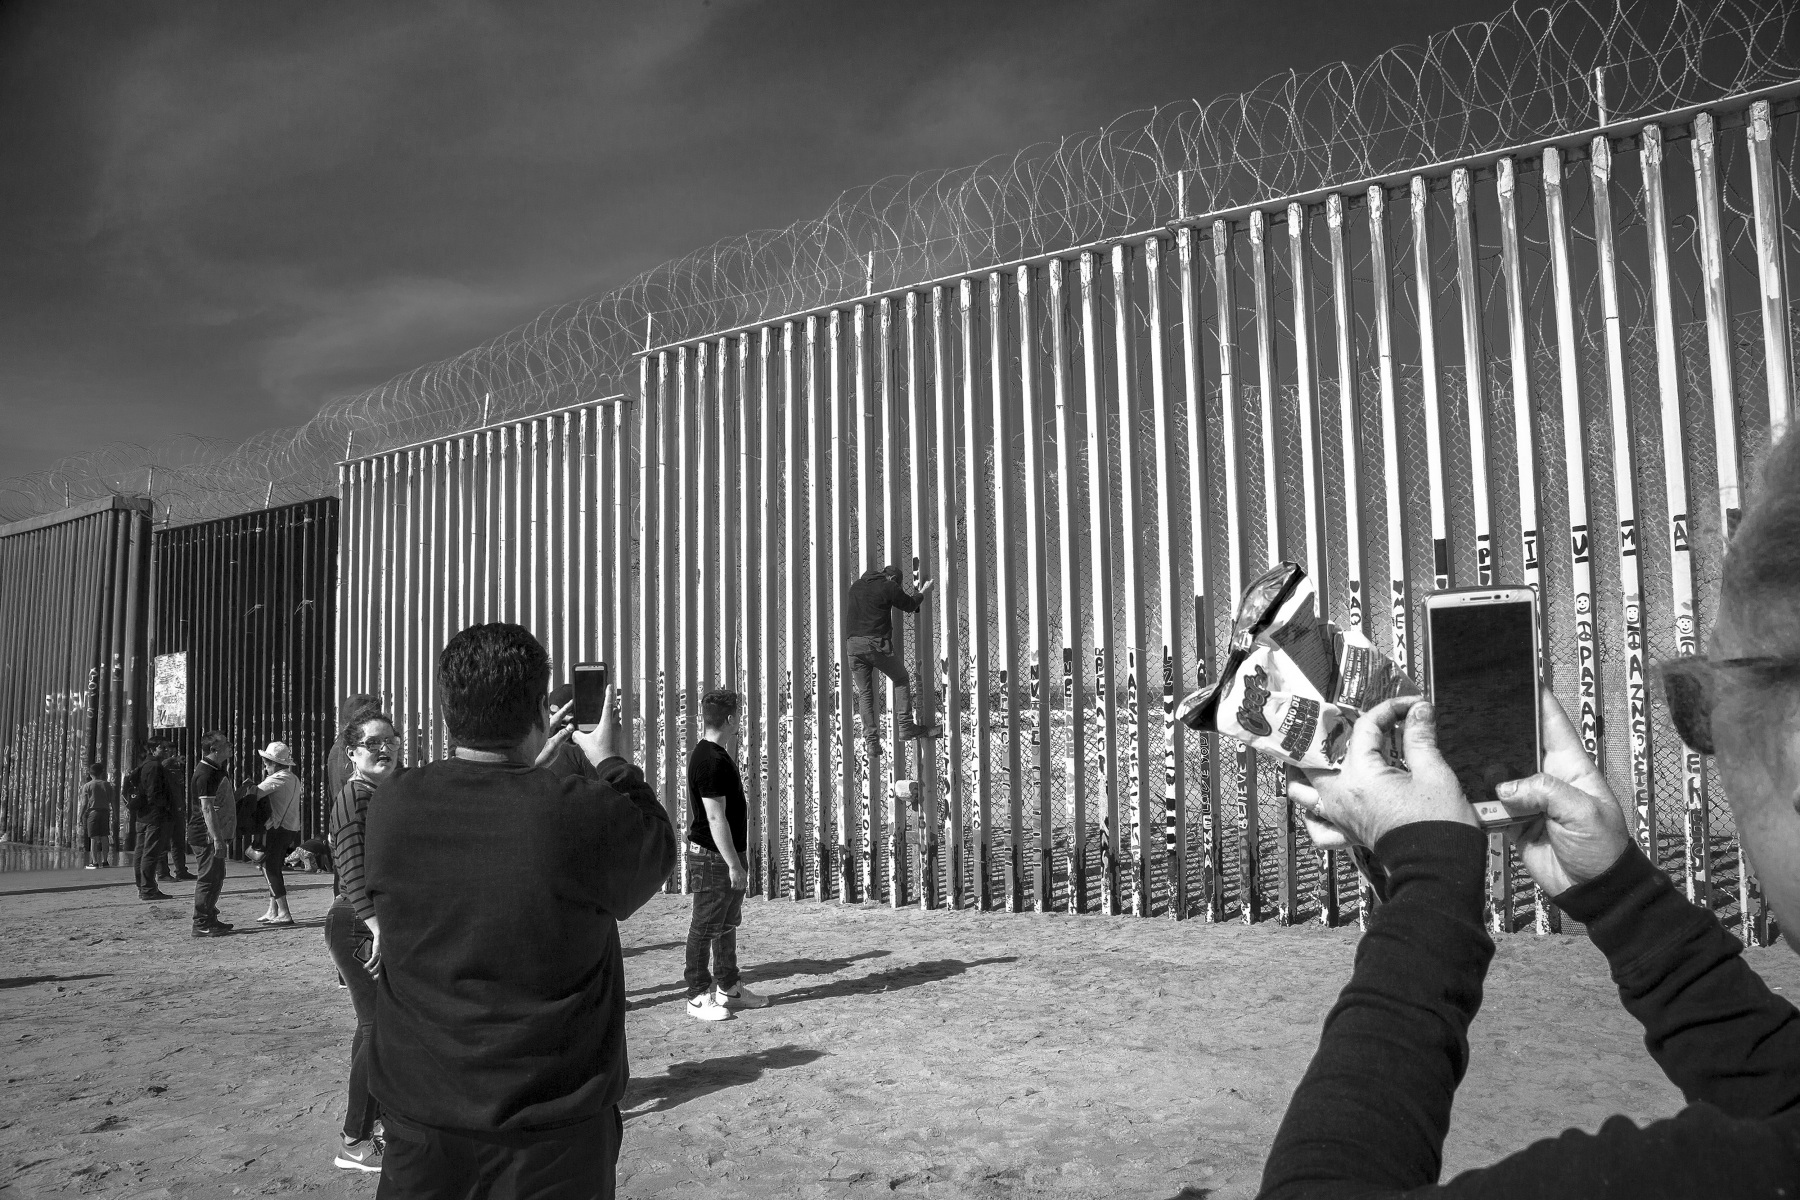 """Jose Neva, center, uses his phone to capture a man attempting to climb the border fence.  """"I just got here a week ago, but I'm trying to make it work. I want to go back to the other side the legal way, so I'm filing paperwork,"""" said Neva, who has two children living in Riverside, California."""